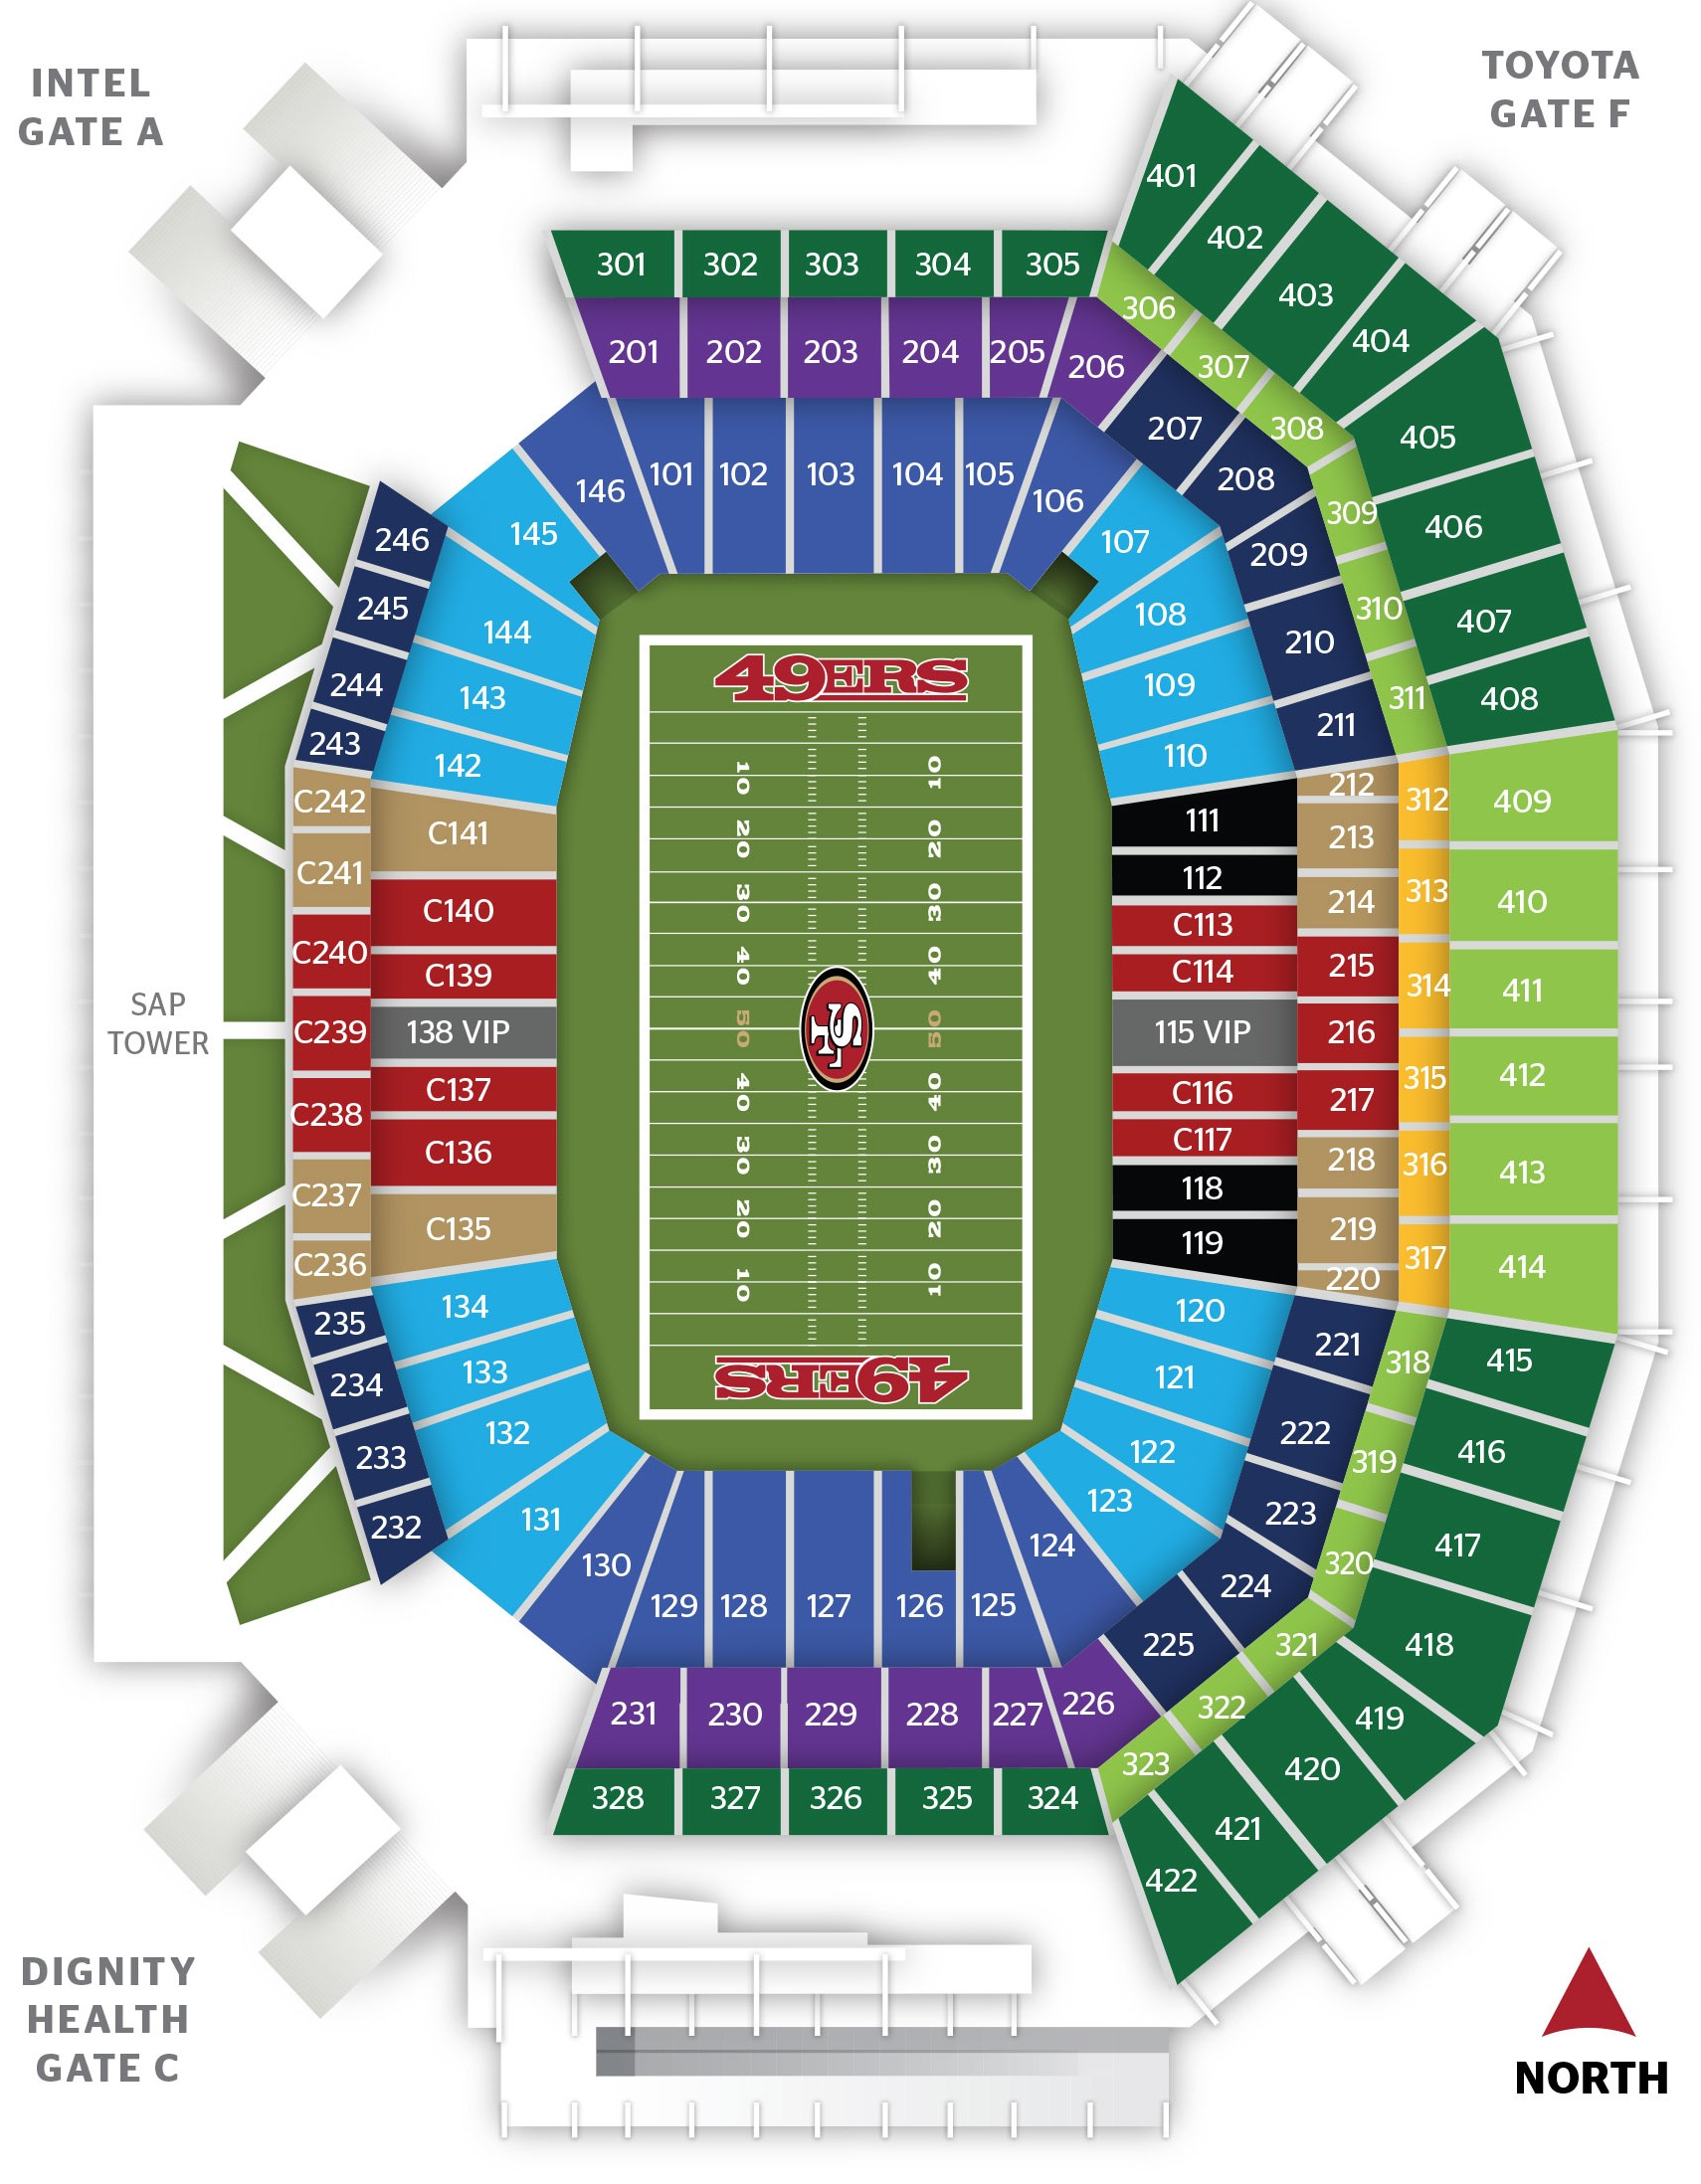 Levis Stadium Capacity >> Levi S Stadium San Francisco 49ers Football Stadium Stadiums Of